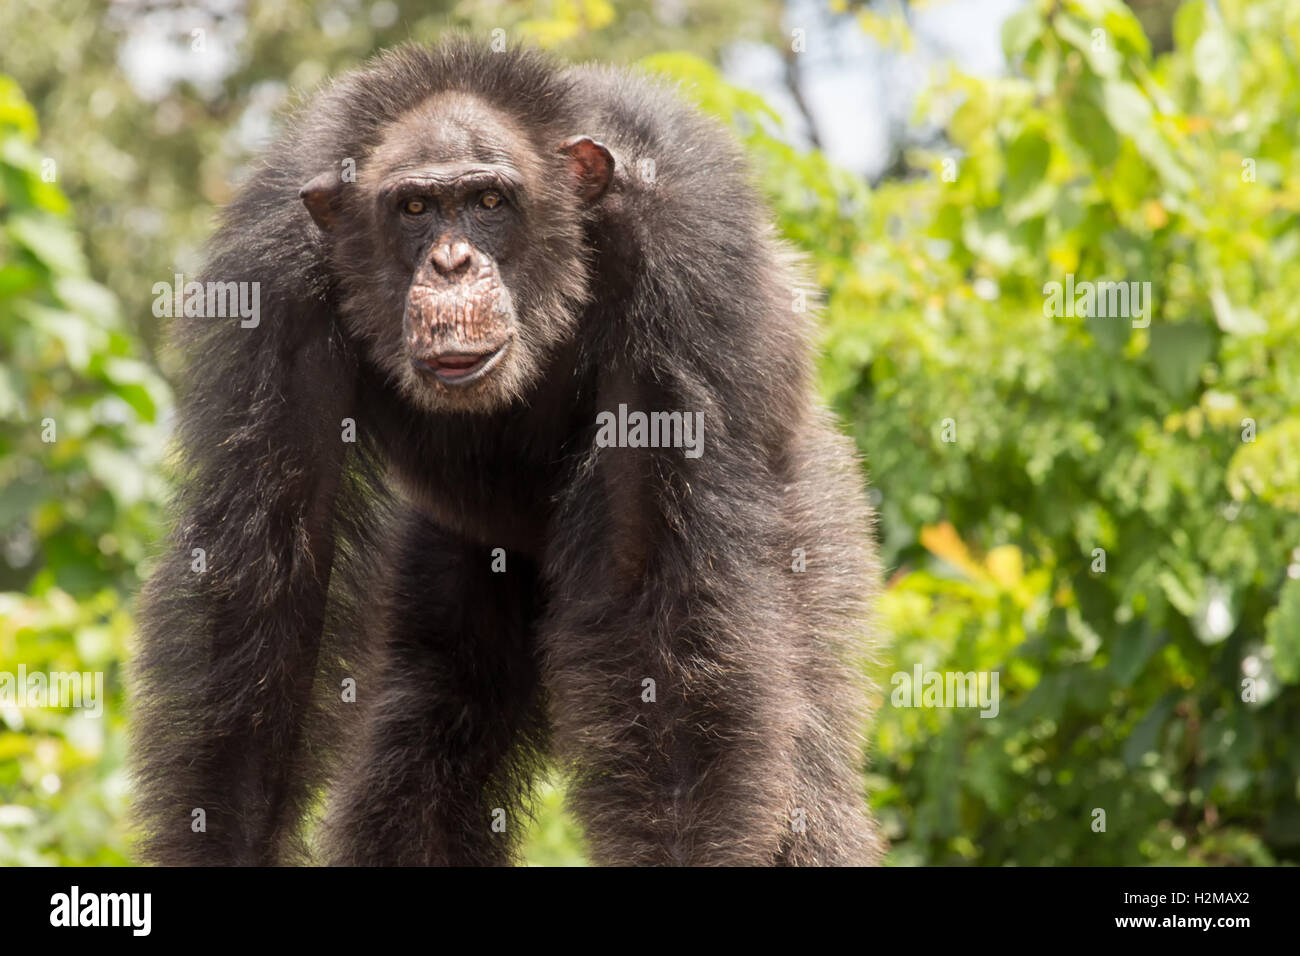 A large, old chimpanzee stands on Monkey Island in Liberia. - Stock Image